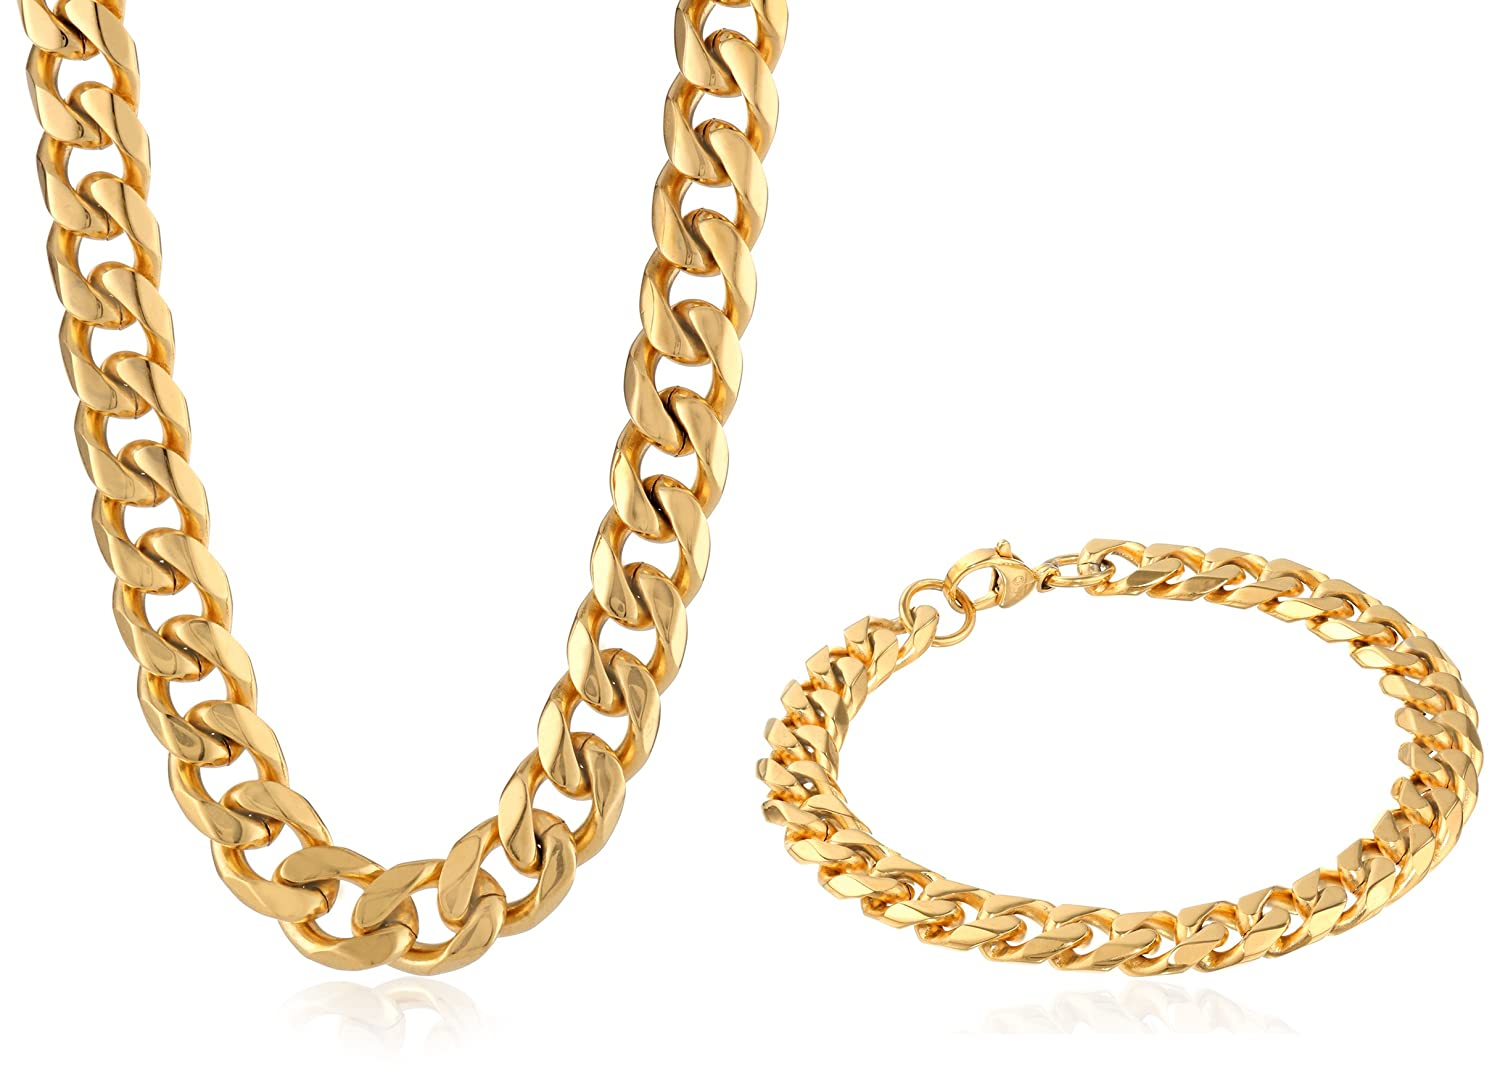 hip pop chain chains mens necklace alexnld bar jewelry com men product gold